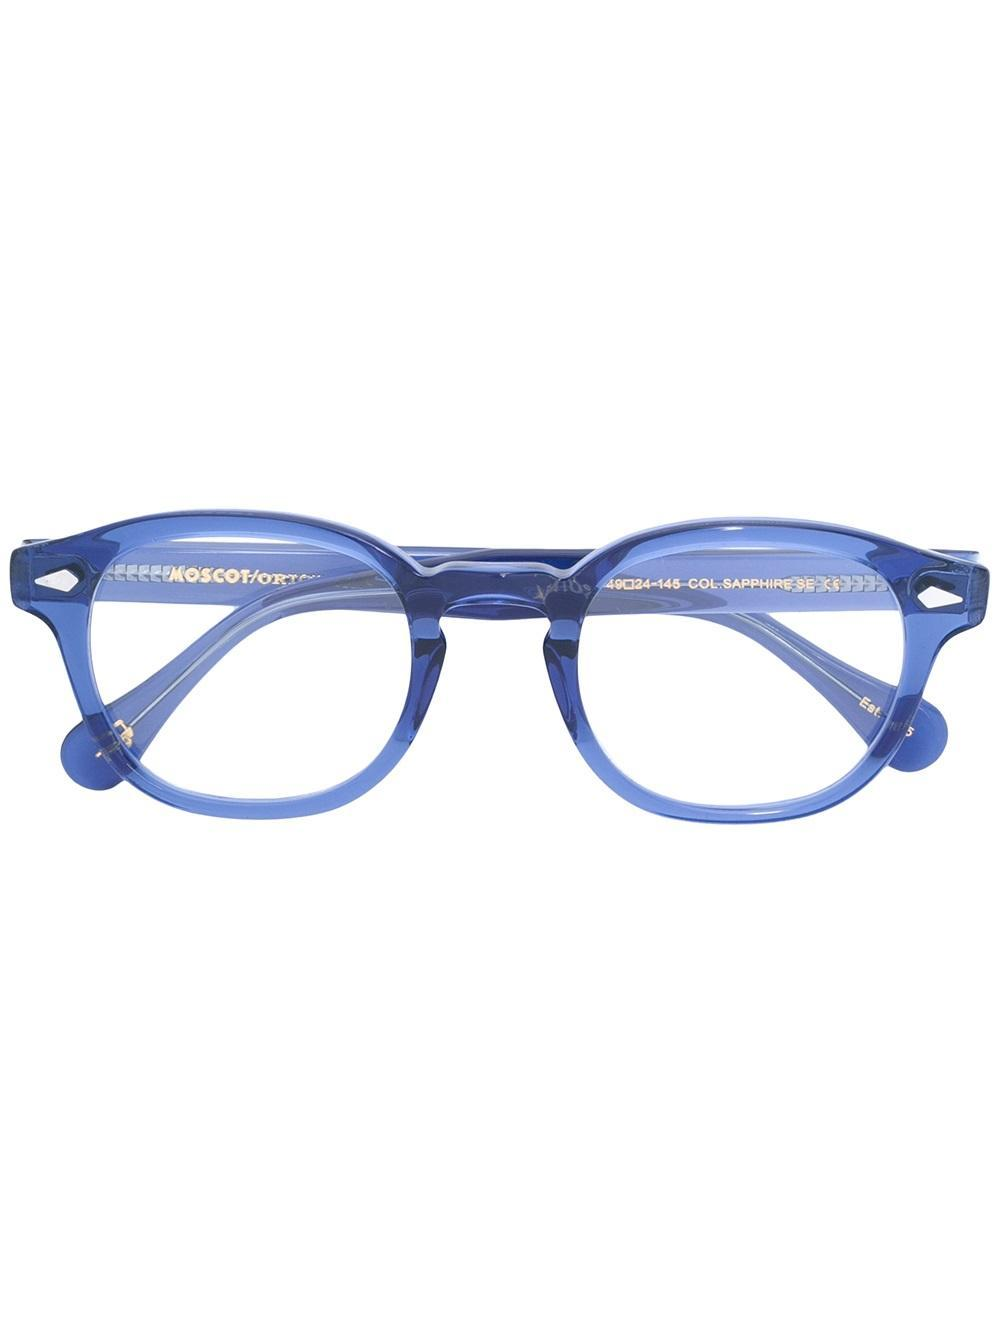 Moscot Round Frame Glasses in Blue Lyst